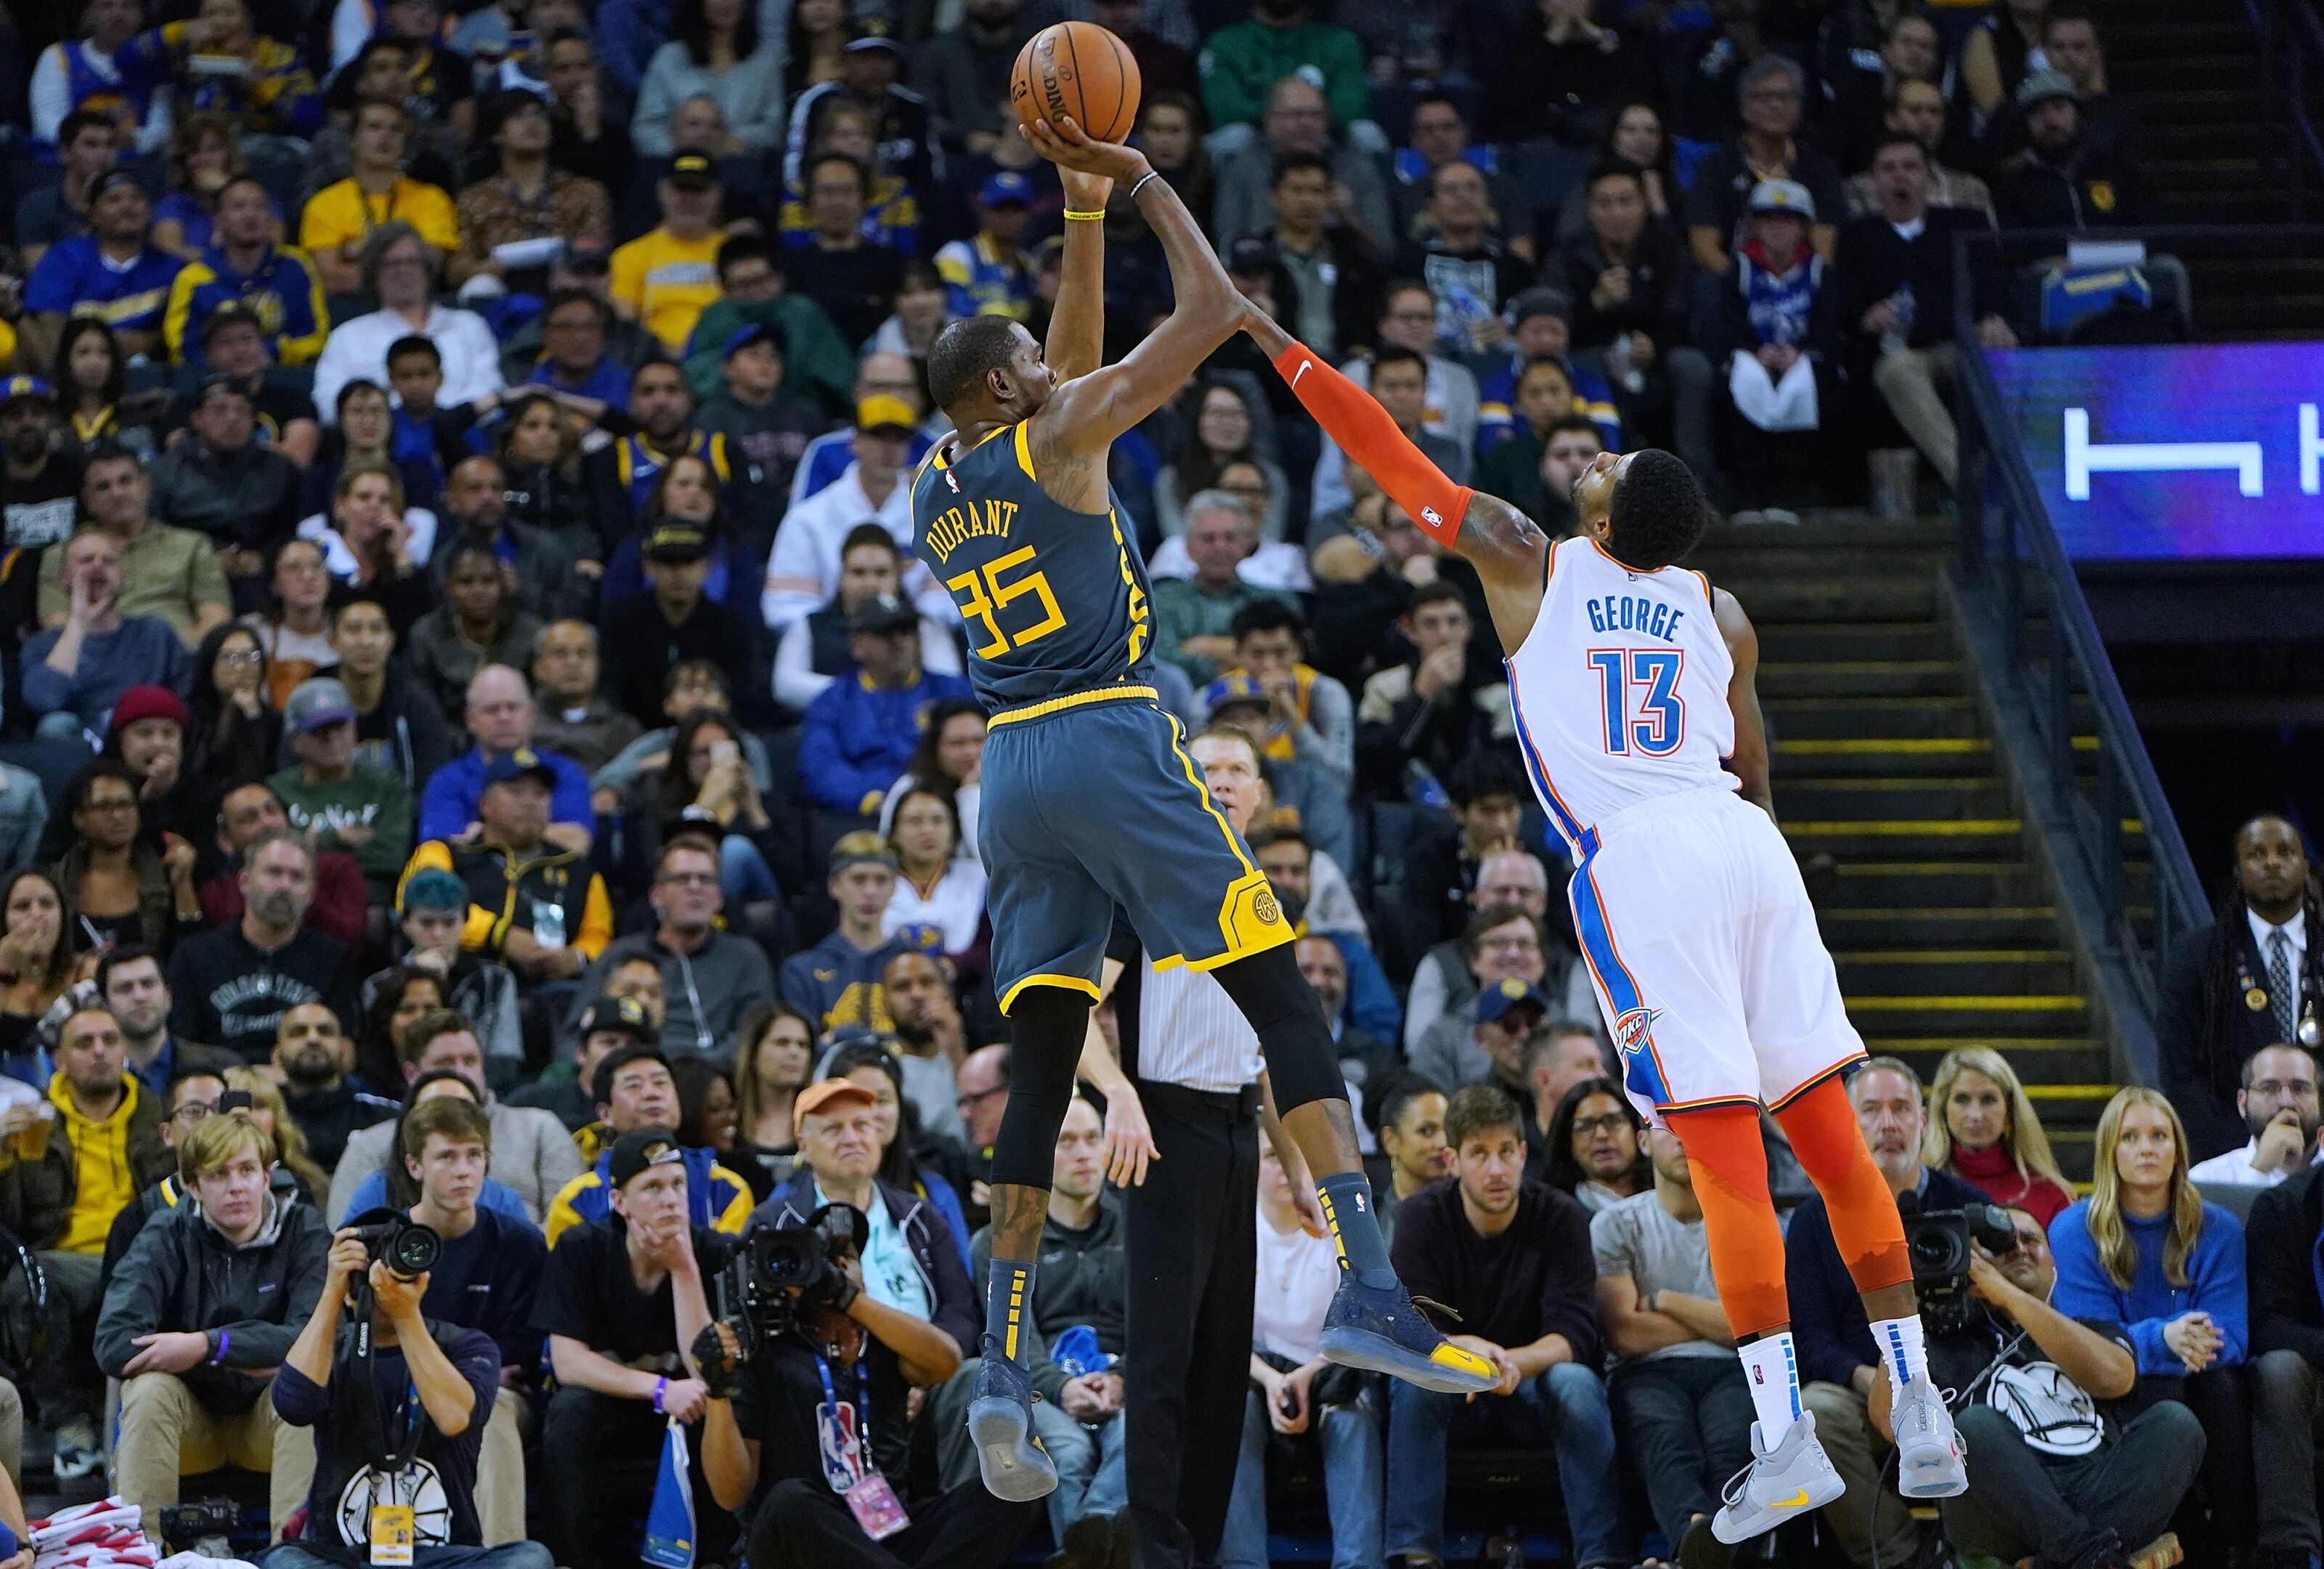 d1b201c8d3a Gameday Preview: OKC Thunder face litmus test against defending champs and  top-seeded Warriors